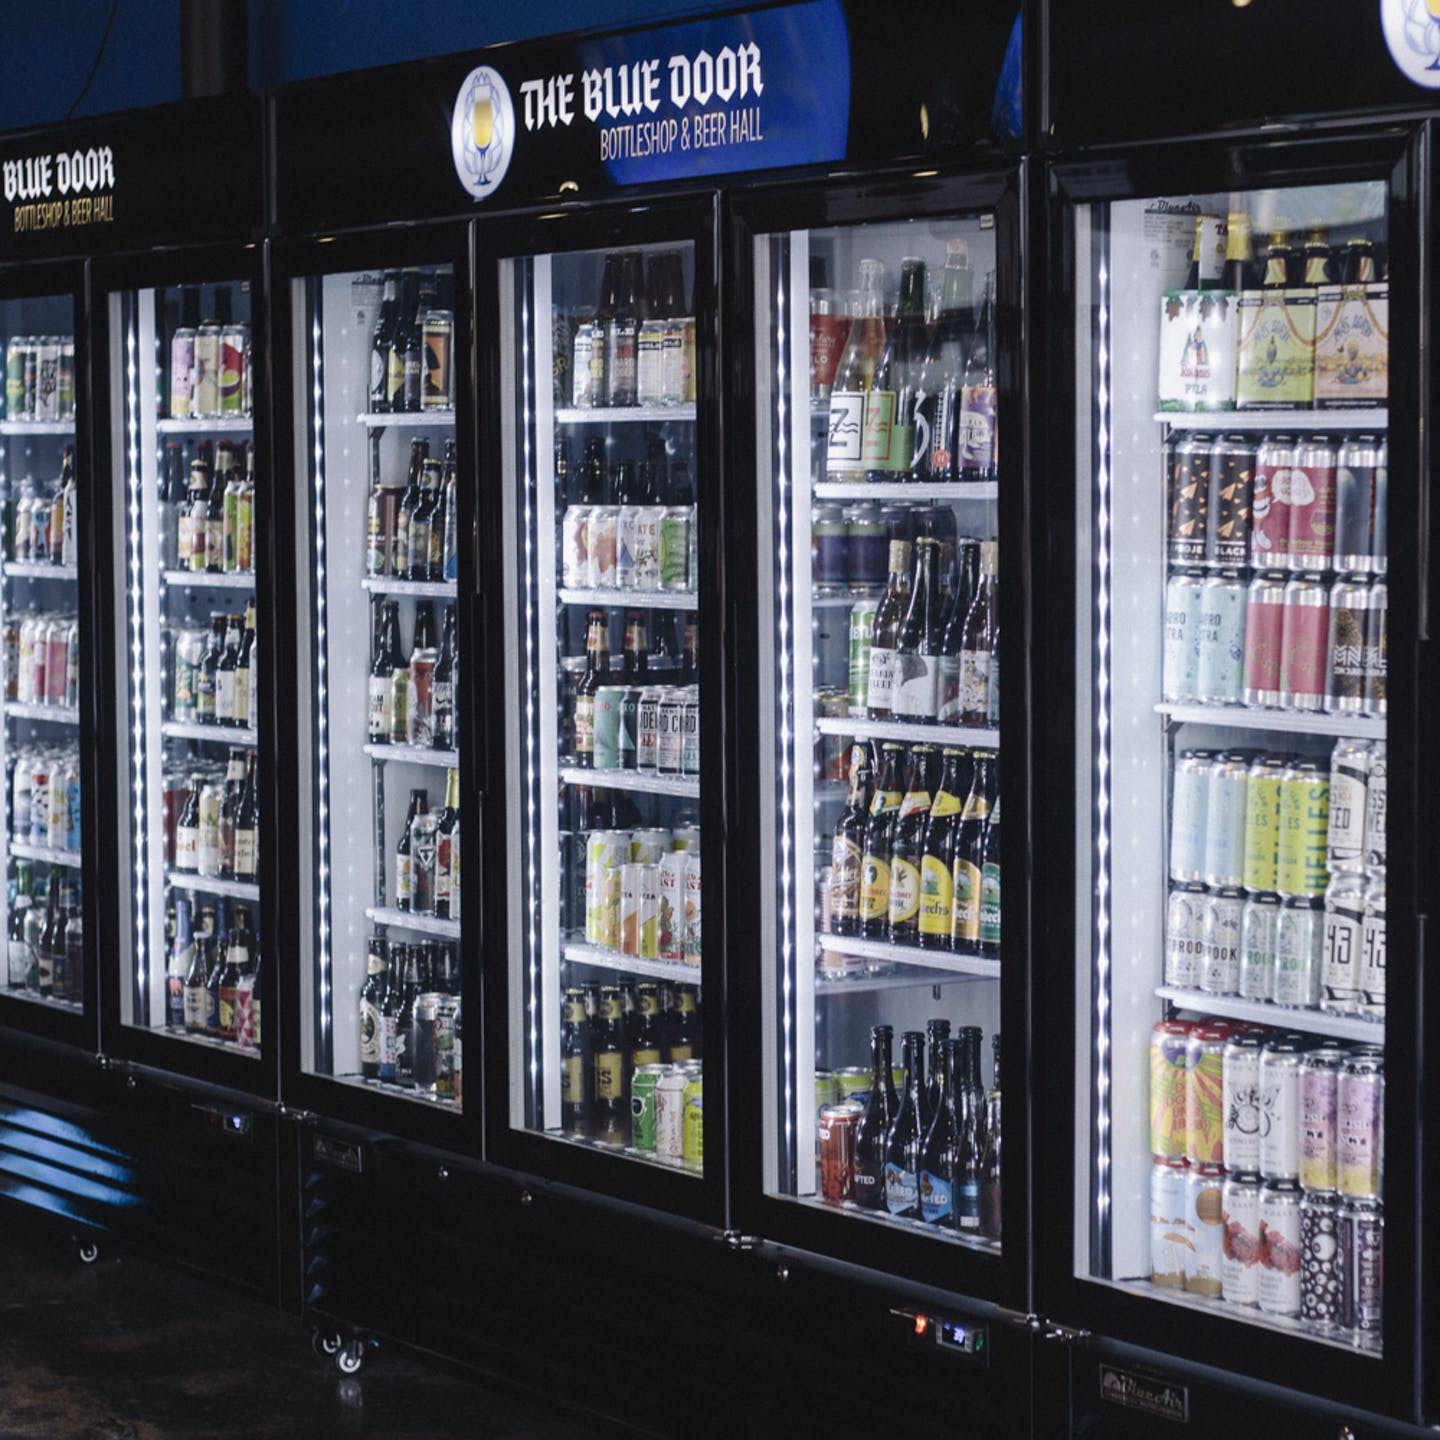 The beer selection